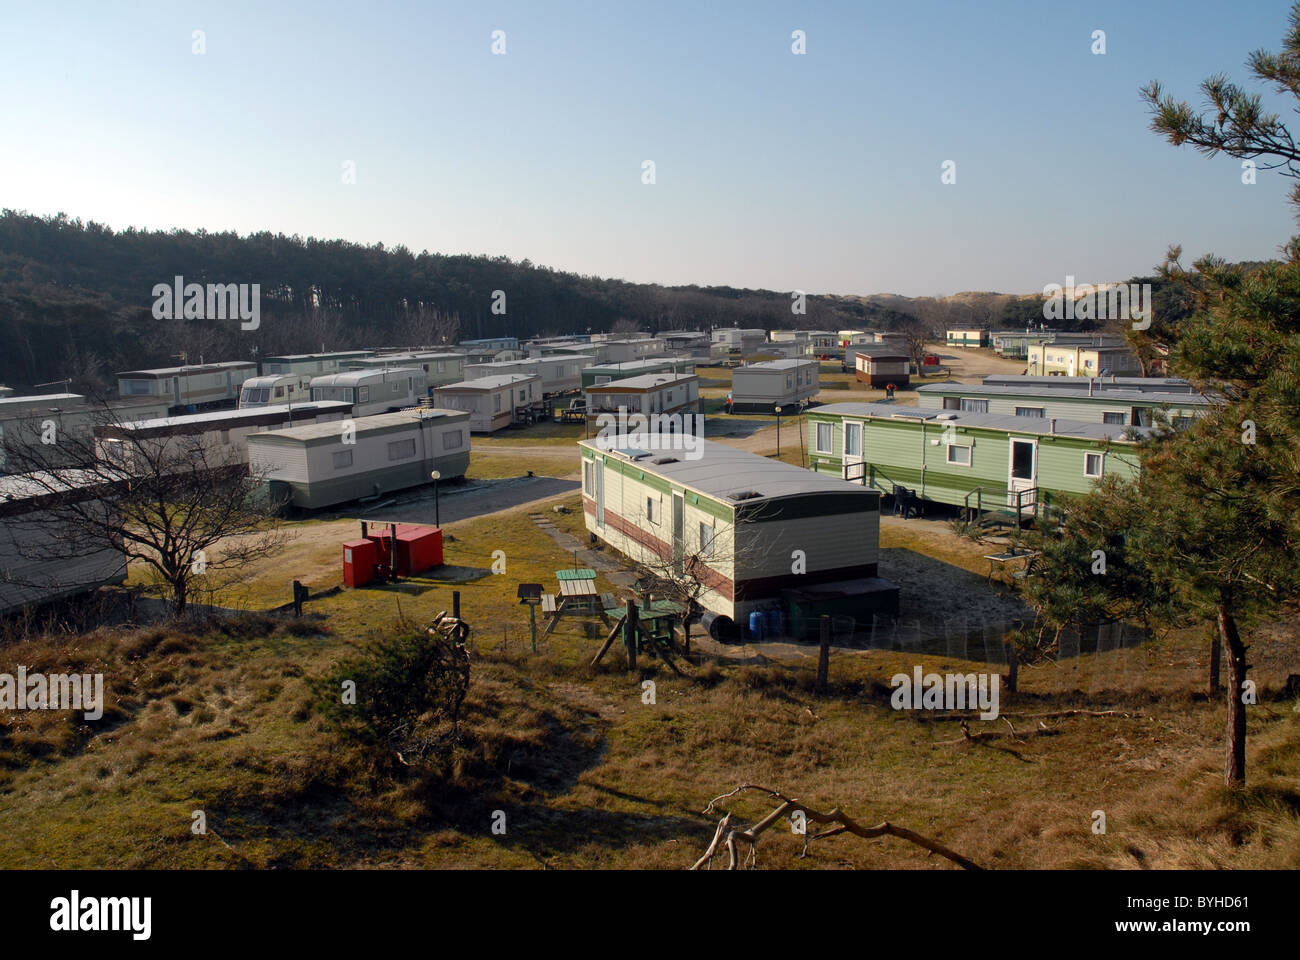 A trailer park in a pine forest near the sea at Formby, Merseyside, England, UK - Stock Image